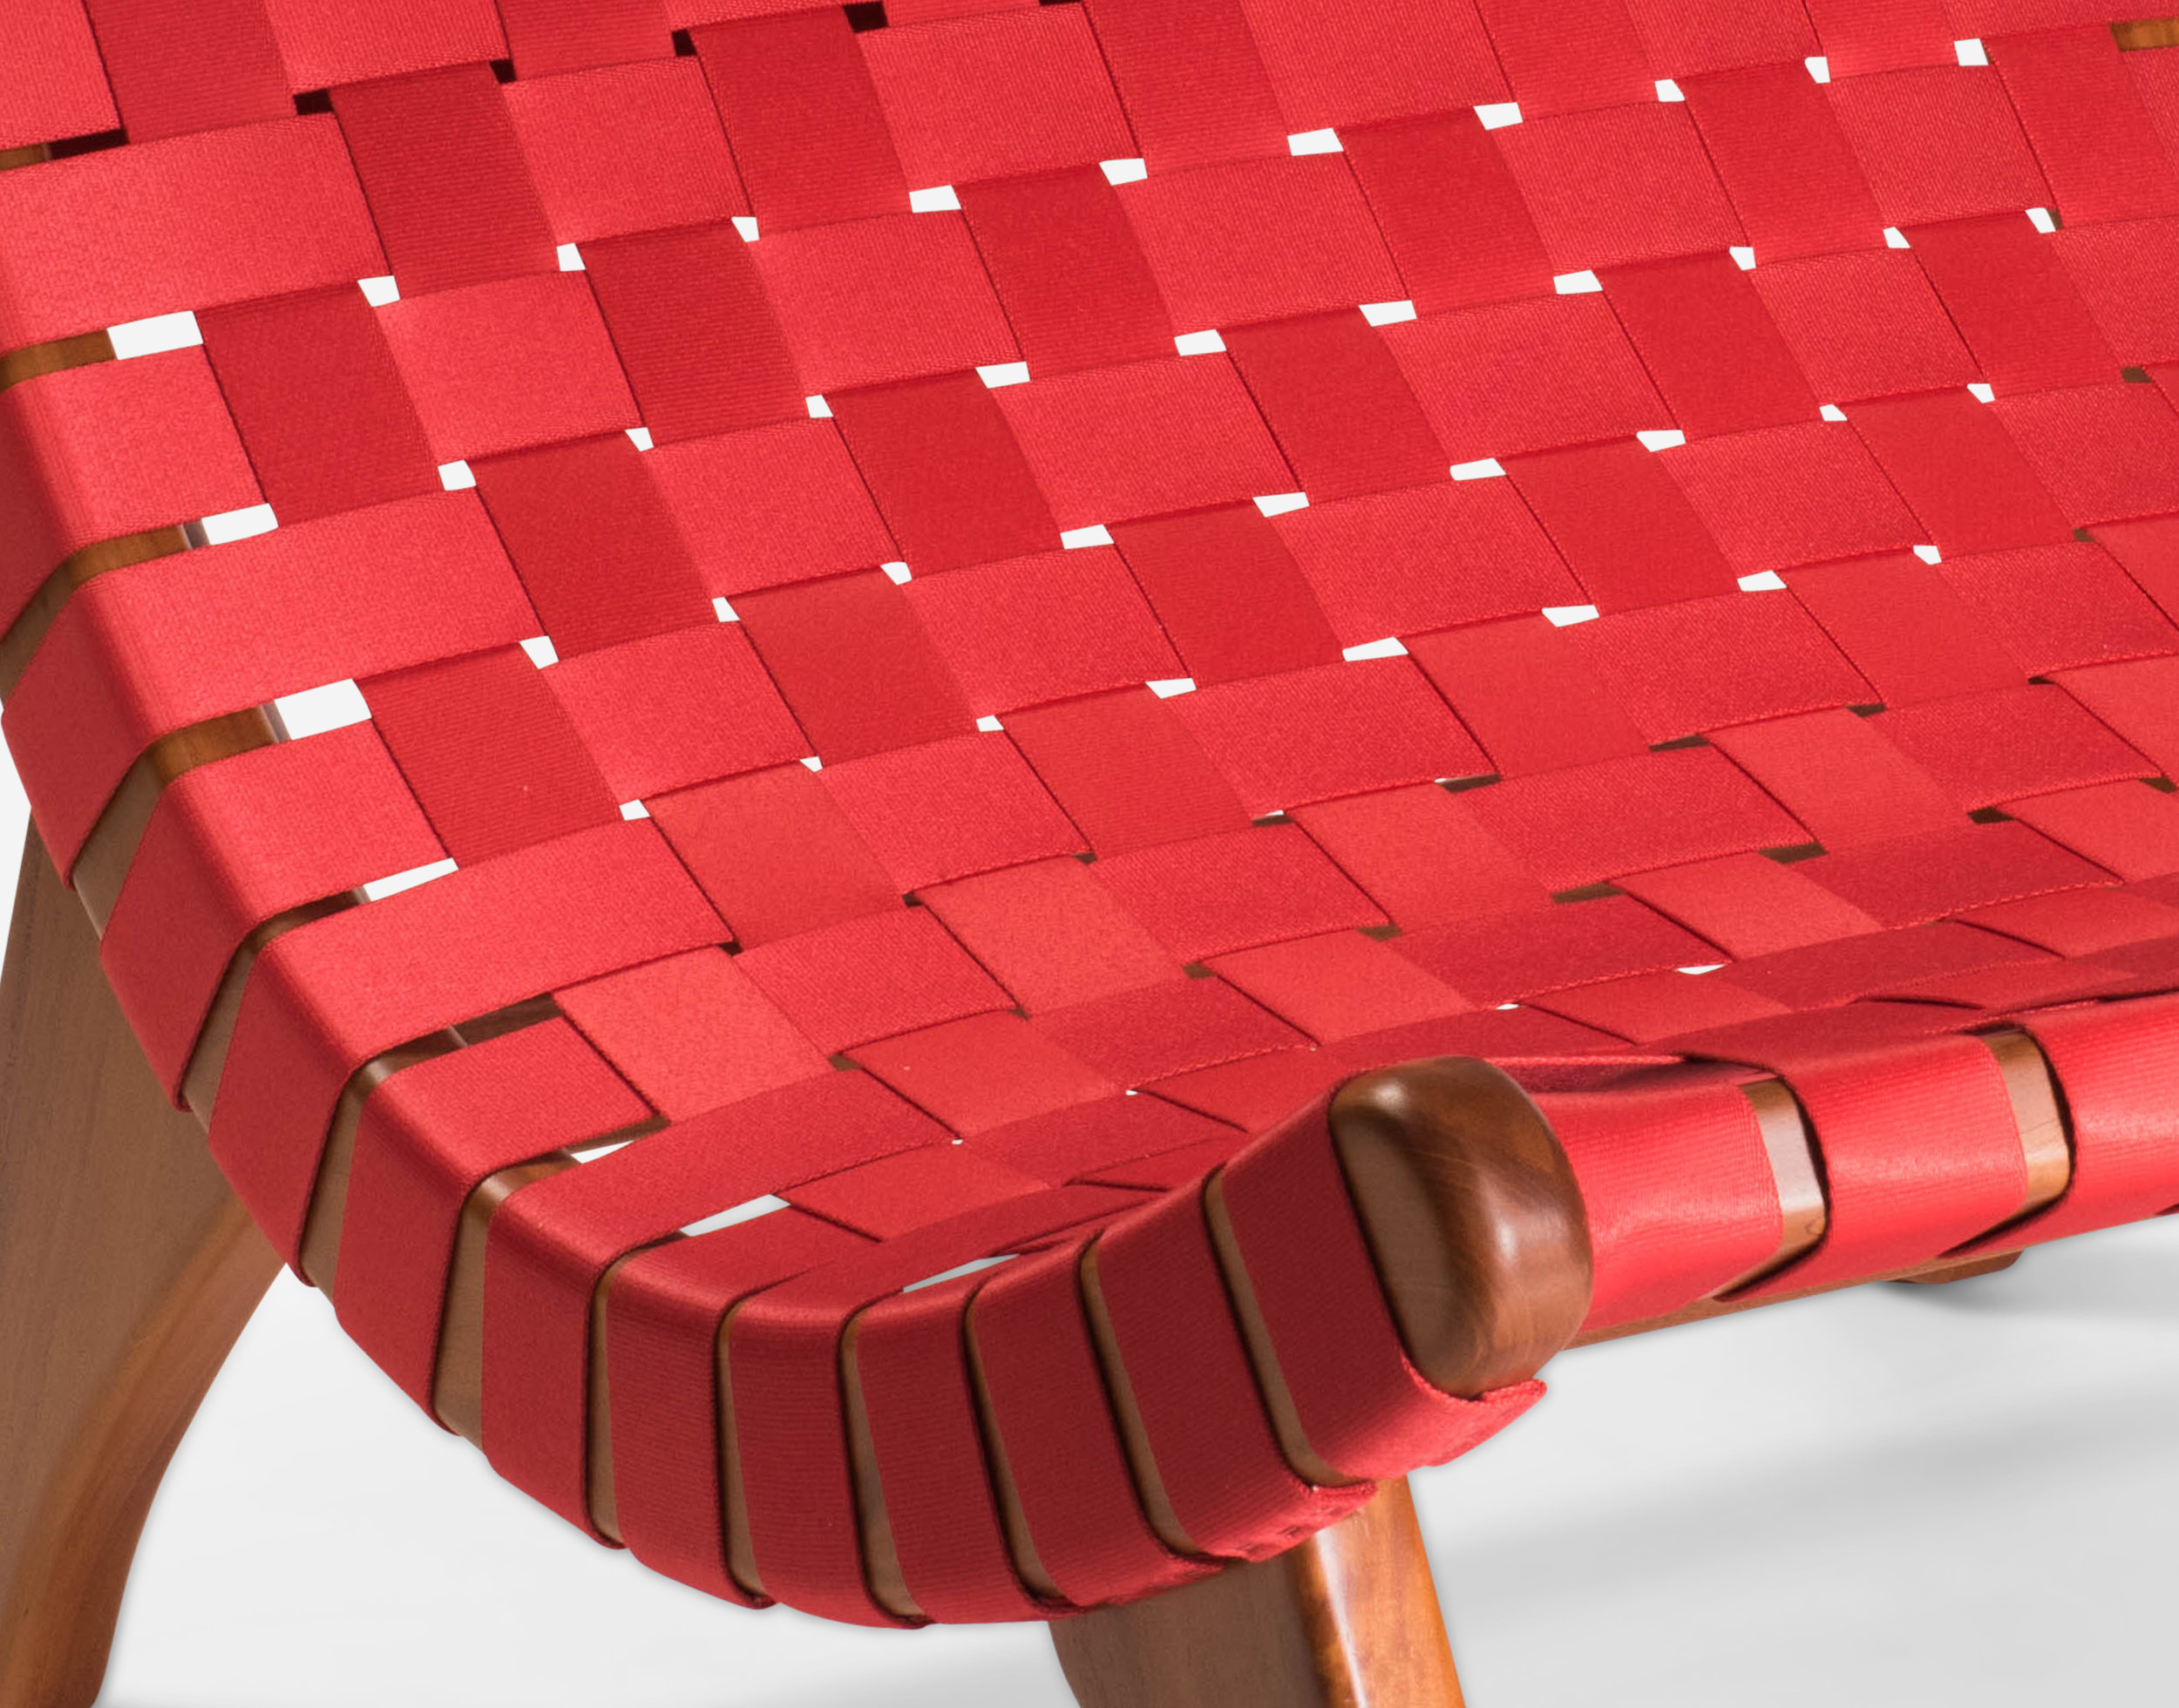 Luteca_MvB_San Miguel-Lounge Chair_Red-Strapping_Mahogany_D2-W.jpg